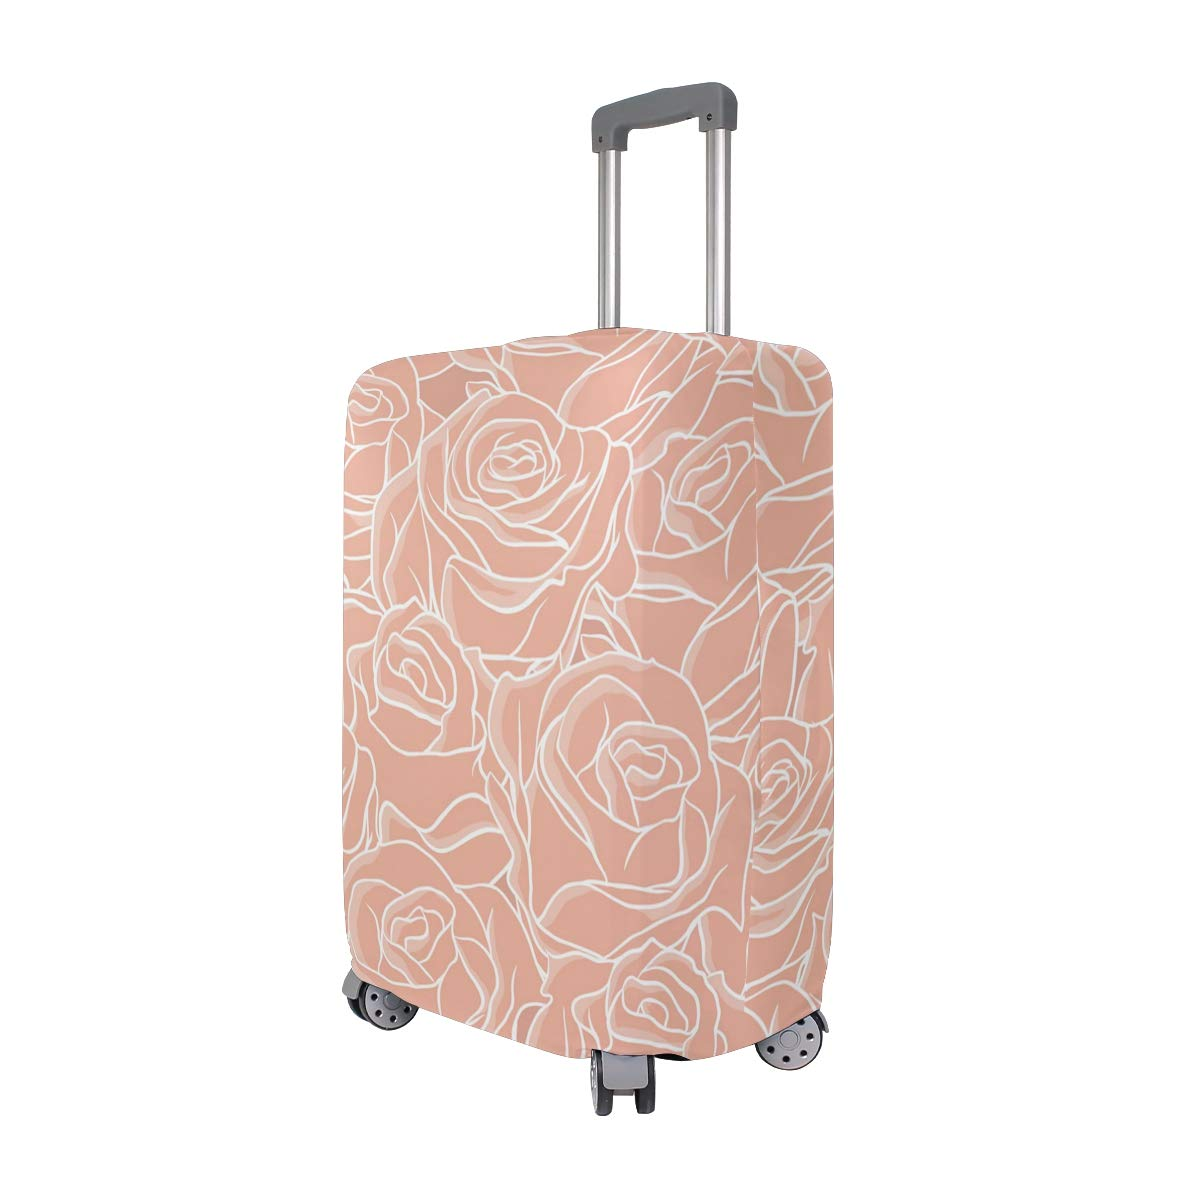 The Color Is So Pure Traveler Lightweight Rotating Luggage Protector Case Can Carry With You Can Expand Travel Bag Trolley Rolling Luggage Protector Case